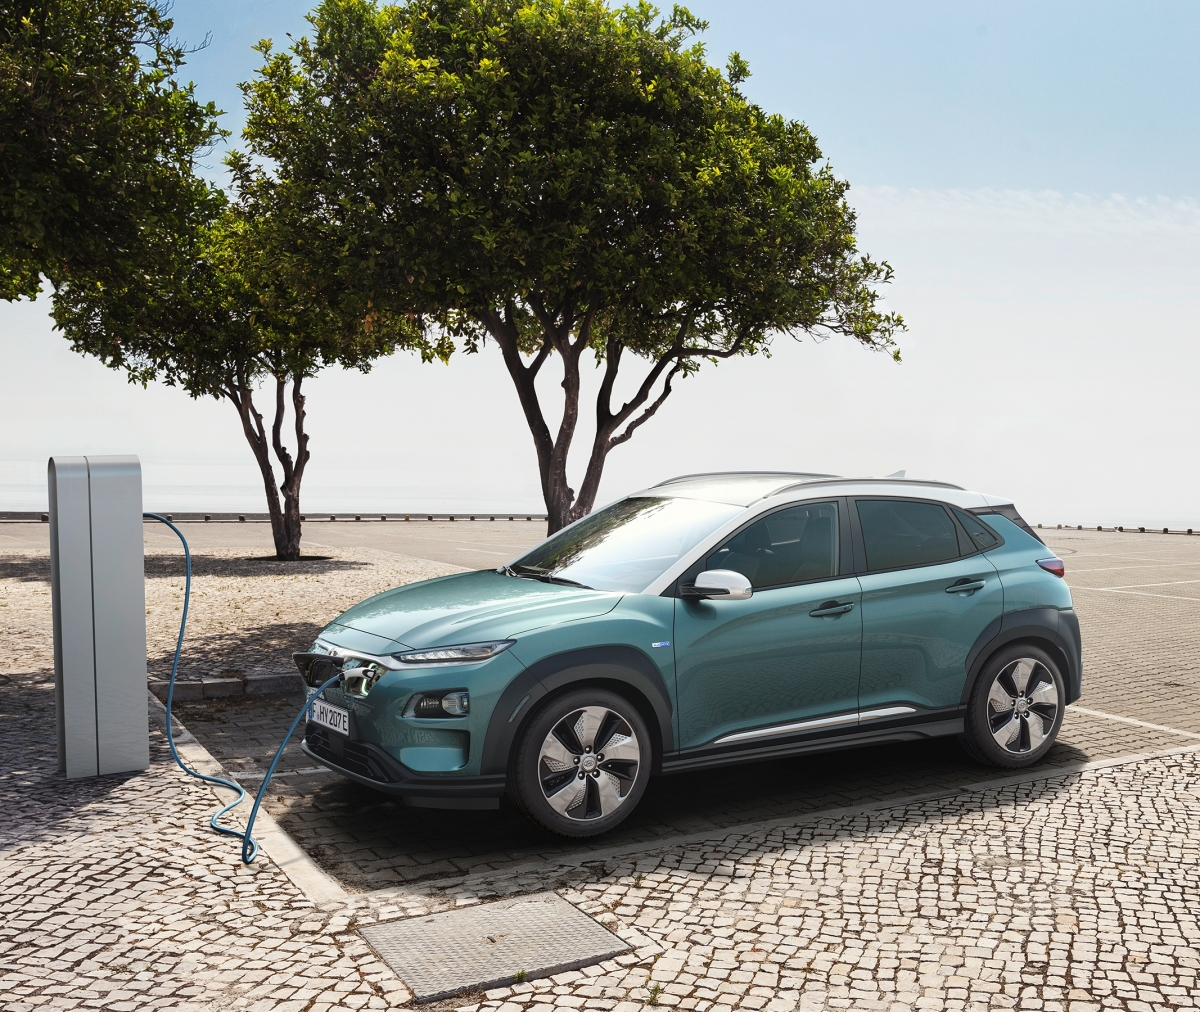 hyundai kona electric suv unveiled with 470km range on single charge all you need to know. Black Bedroom Furniture Sets. Home Design Ideas